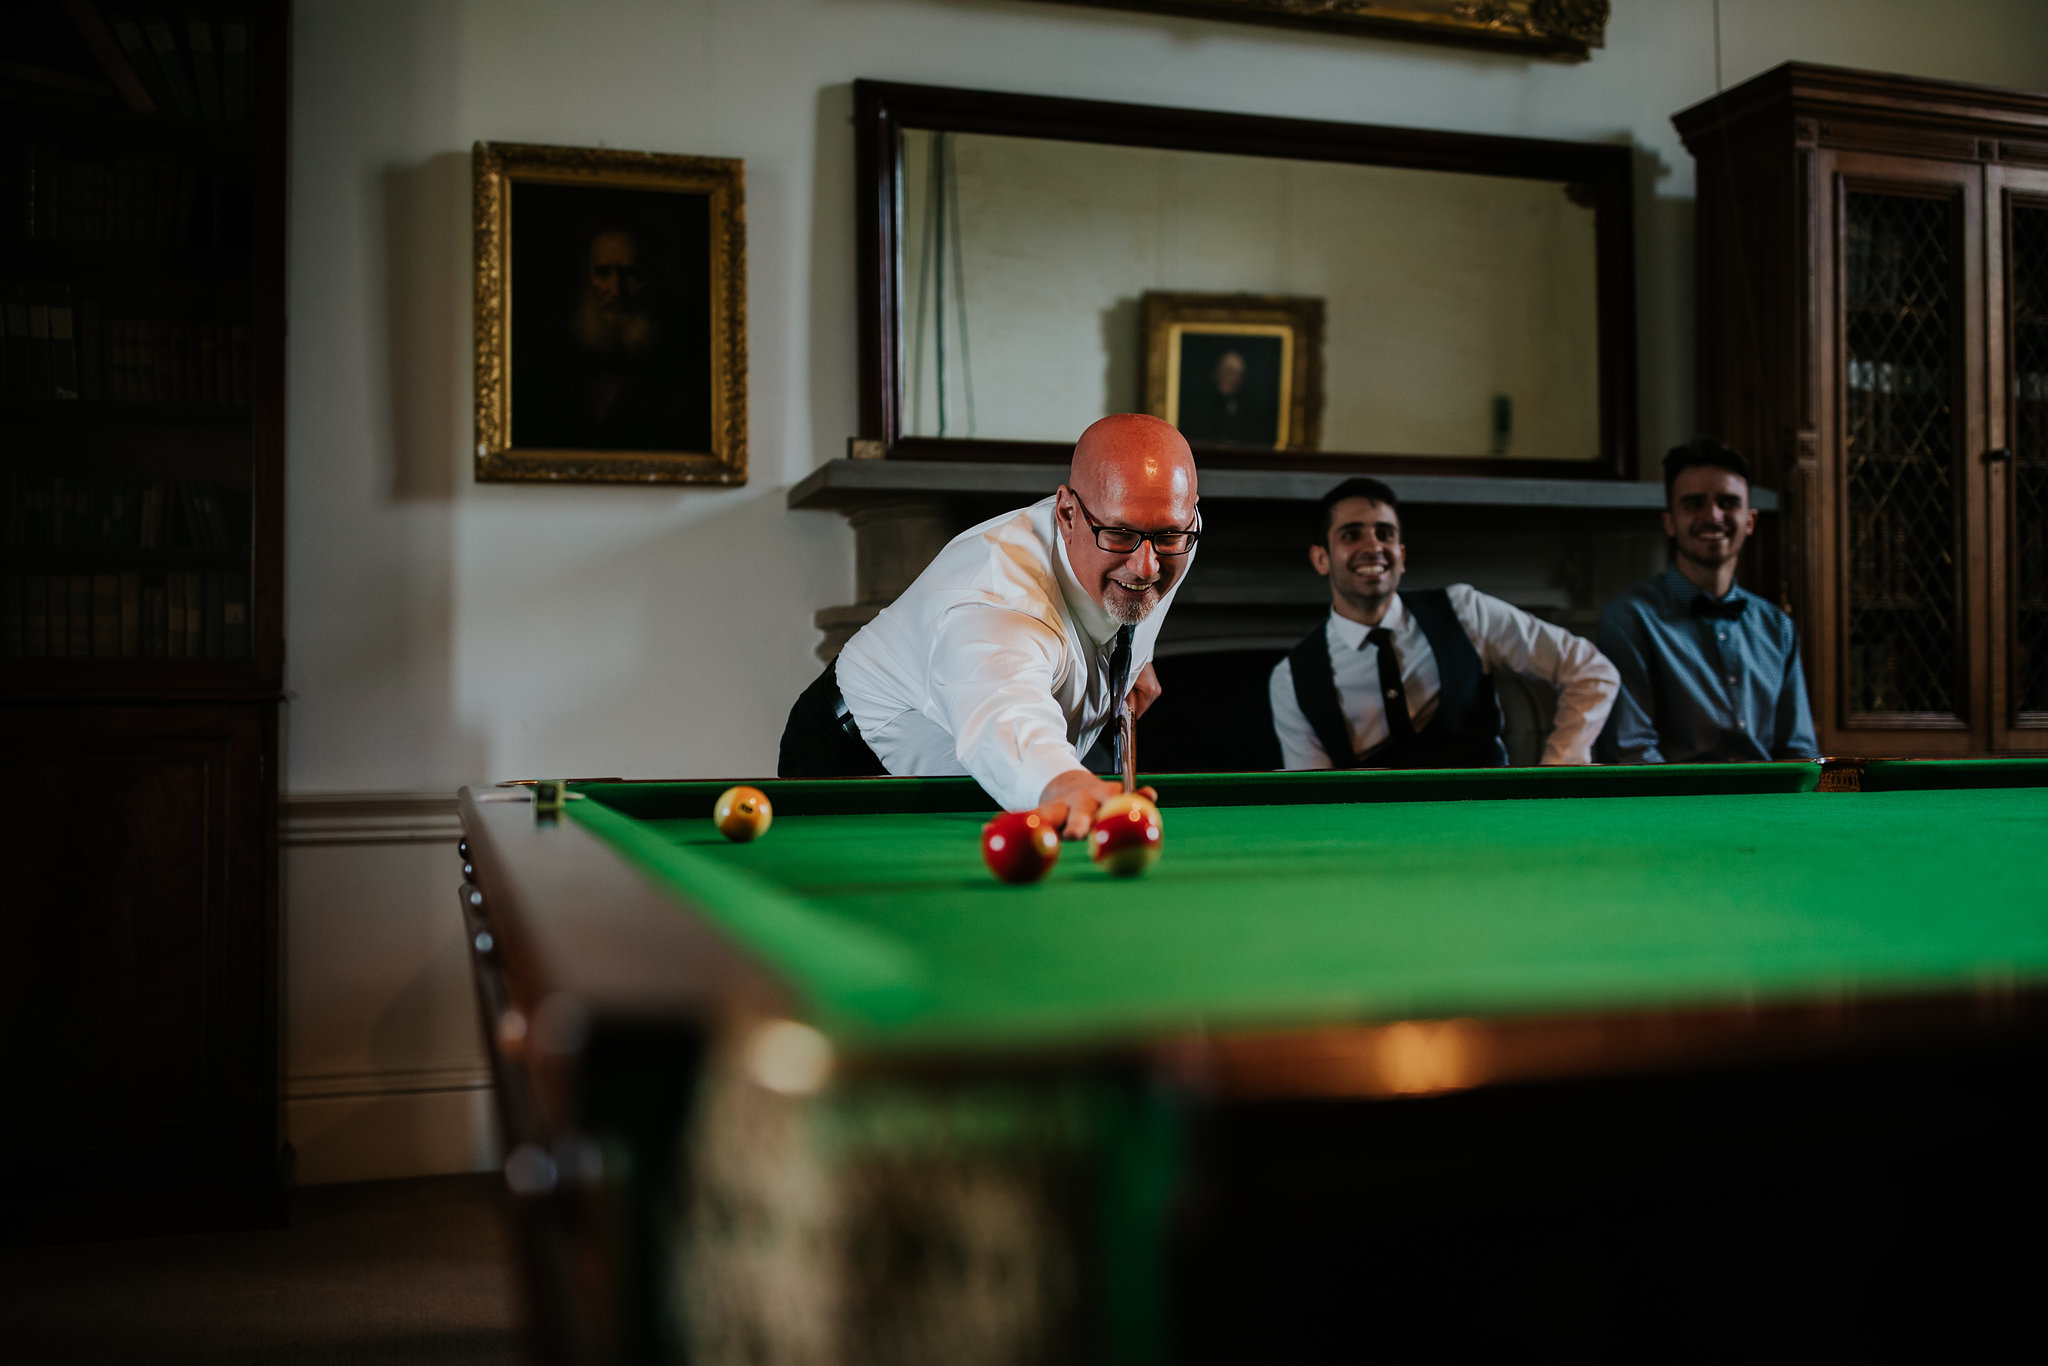 Duns_Castle_wedding_photographer_ross_alexander_photography (87).jpg